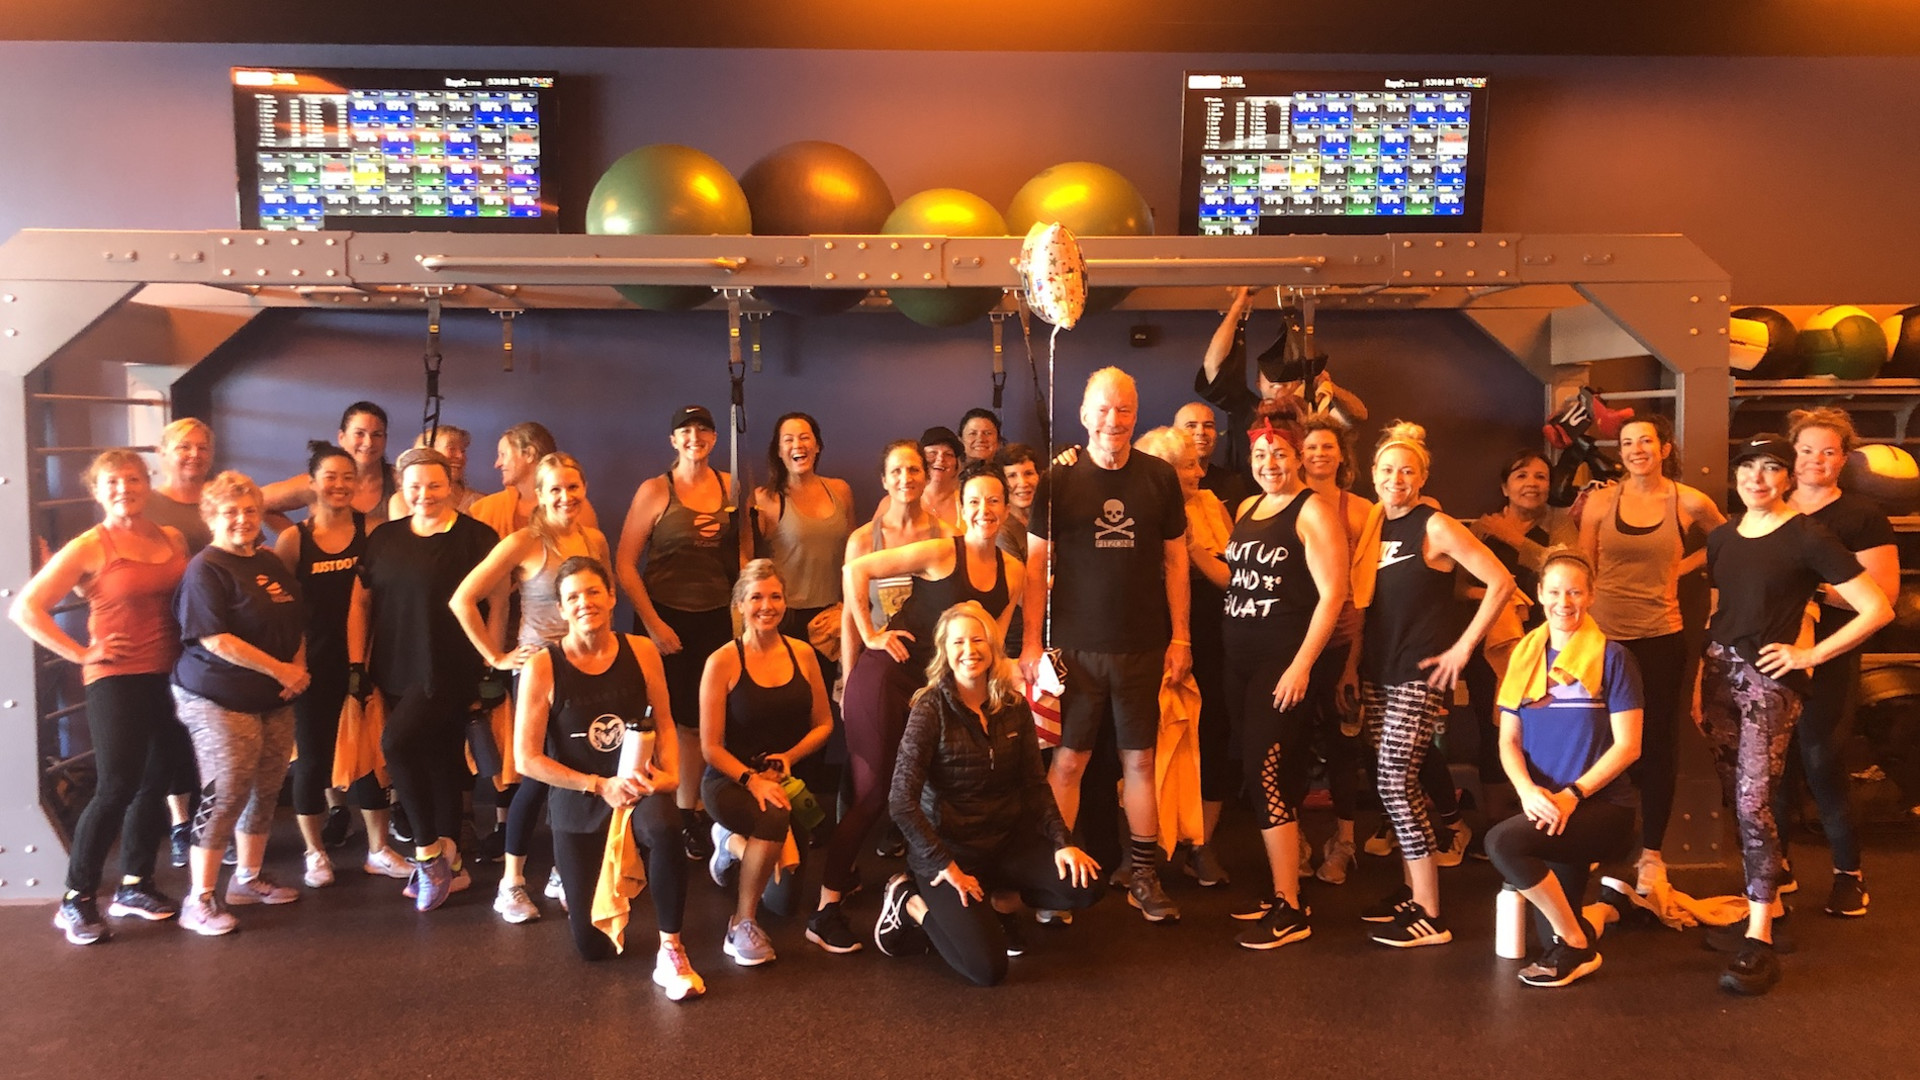 <style> v {   text-shadow: 2px 2px 8px #1e2a55; } </style><strong><v>Voted #1 Fitness Studio in Ventura County 2016 | 2017 | 2018 | 2019</v></strong>